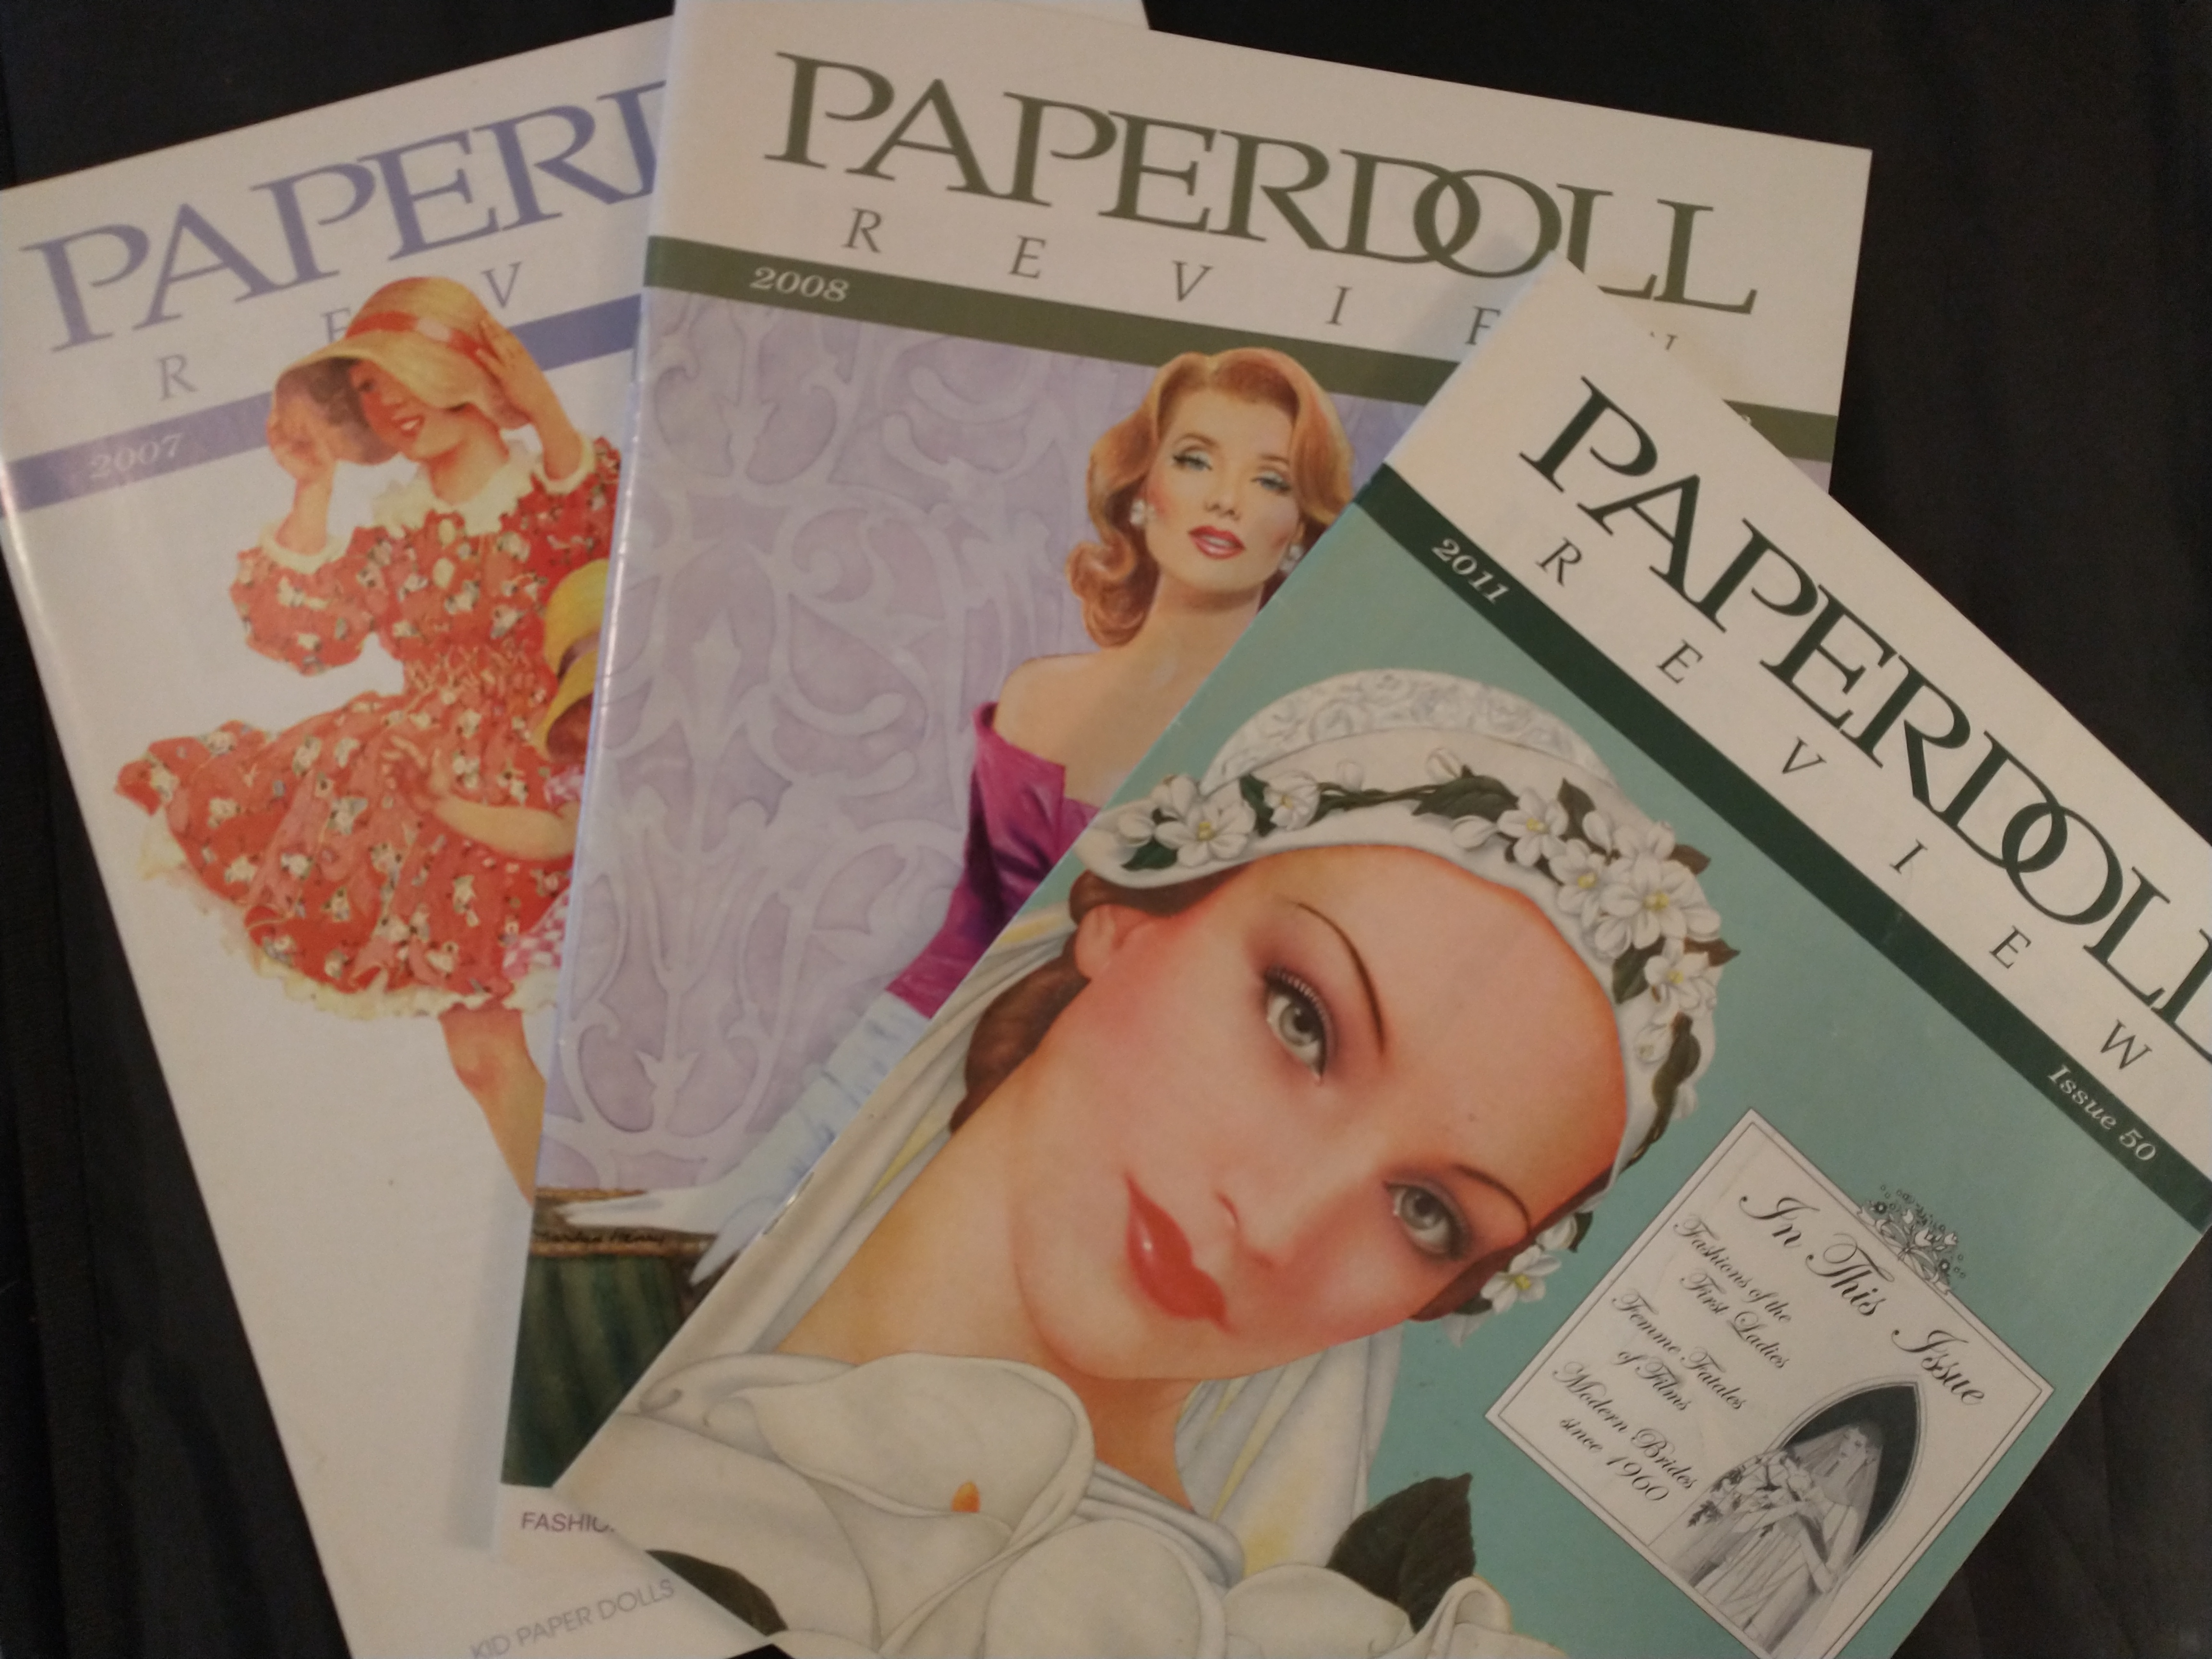 Image for PAPERDOLL REVIEW    ISSUE 41 2007 , ISSUE 47 2008,  ISSUE 50 2011